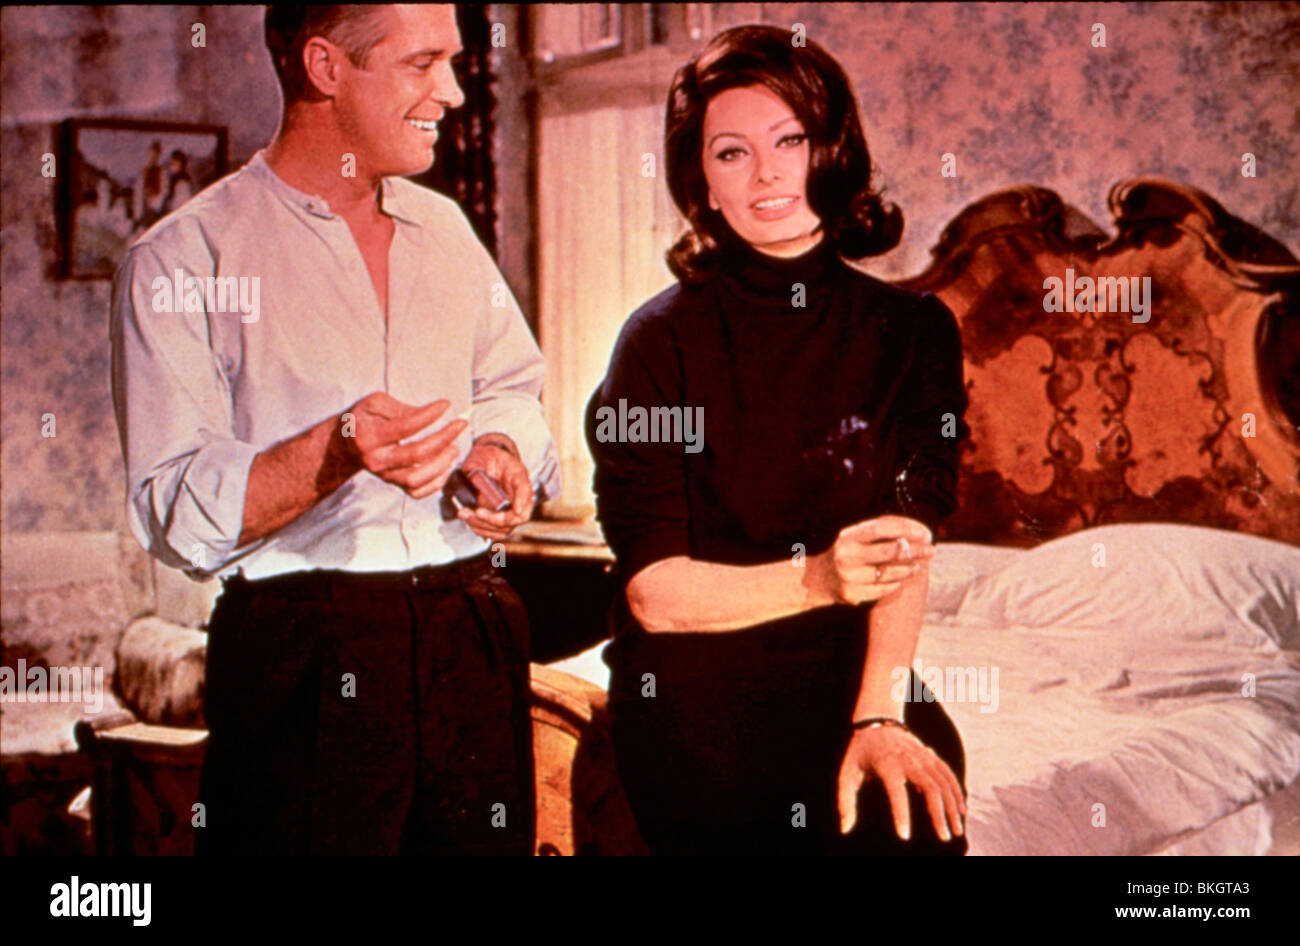 OPERATION CROSSBOW (1965) THE GREAT SPY MISSION (ALT) GEORGE PEPPARD, SOPHIA LOREN OPC 005 - Stock Image